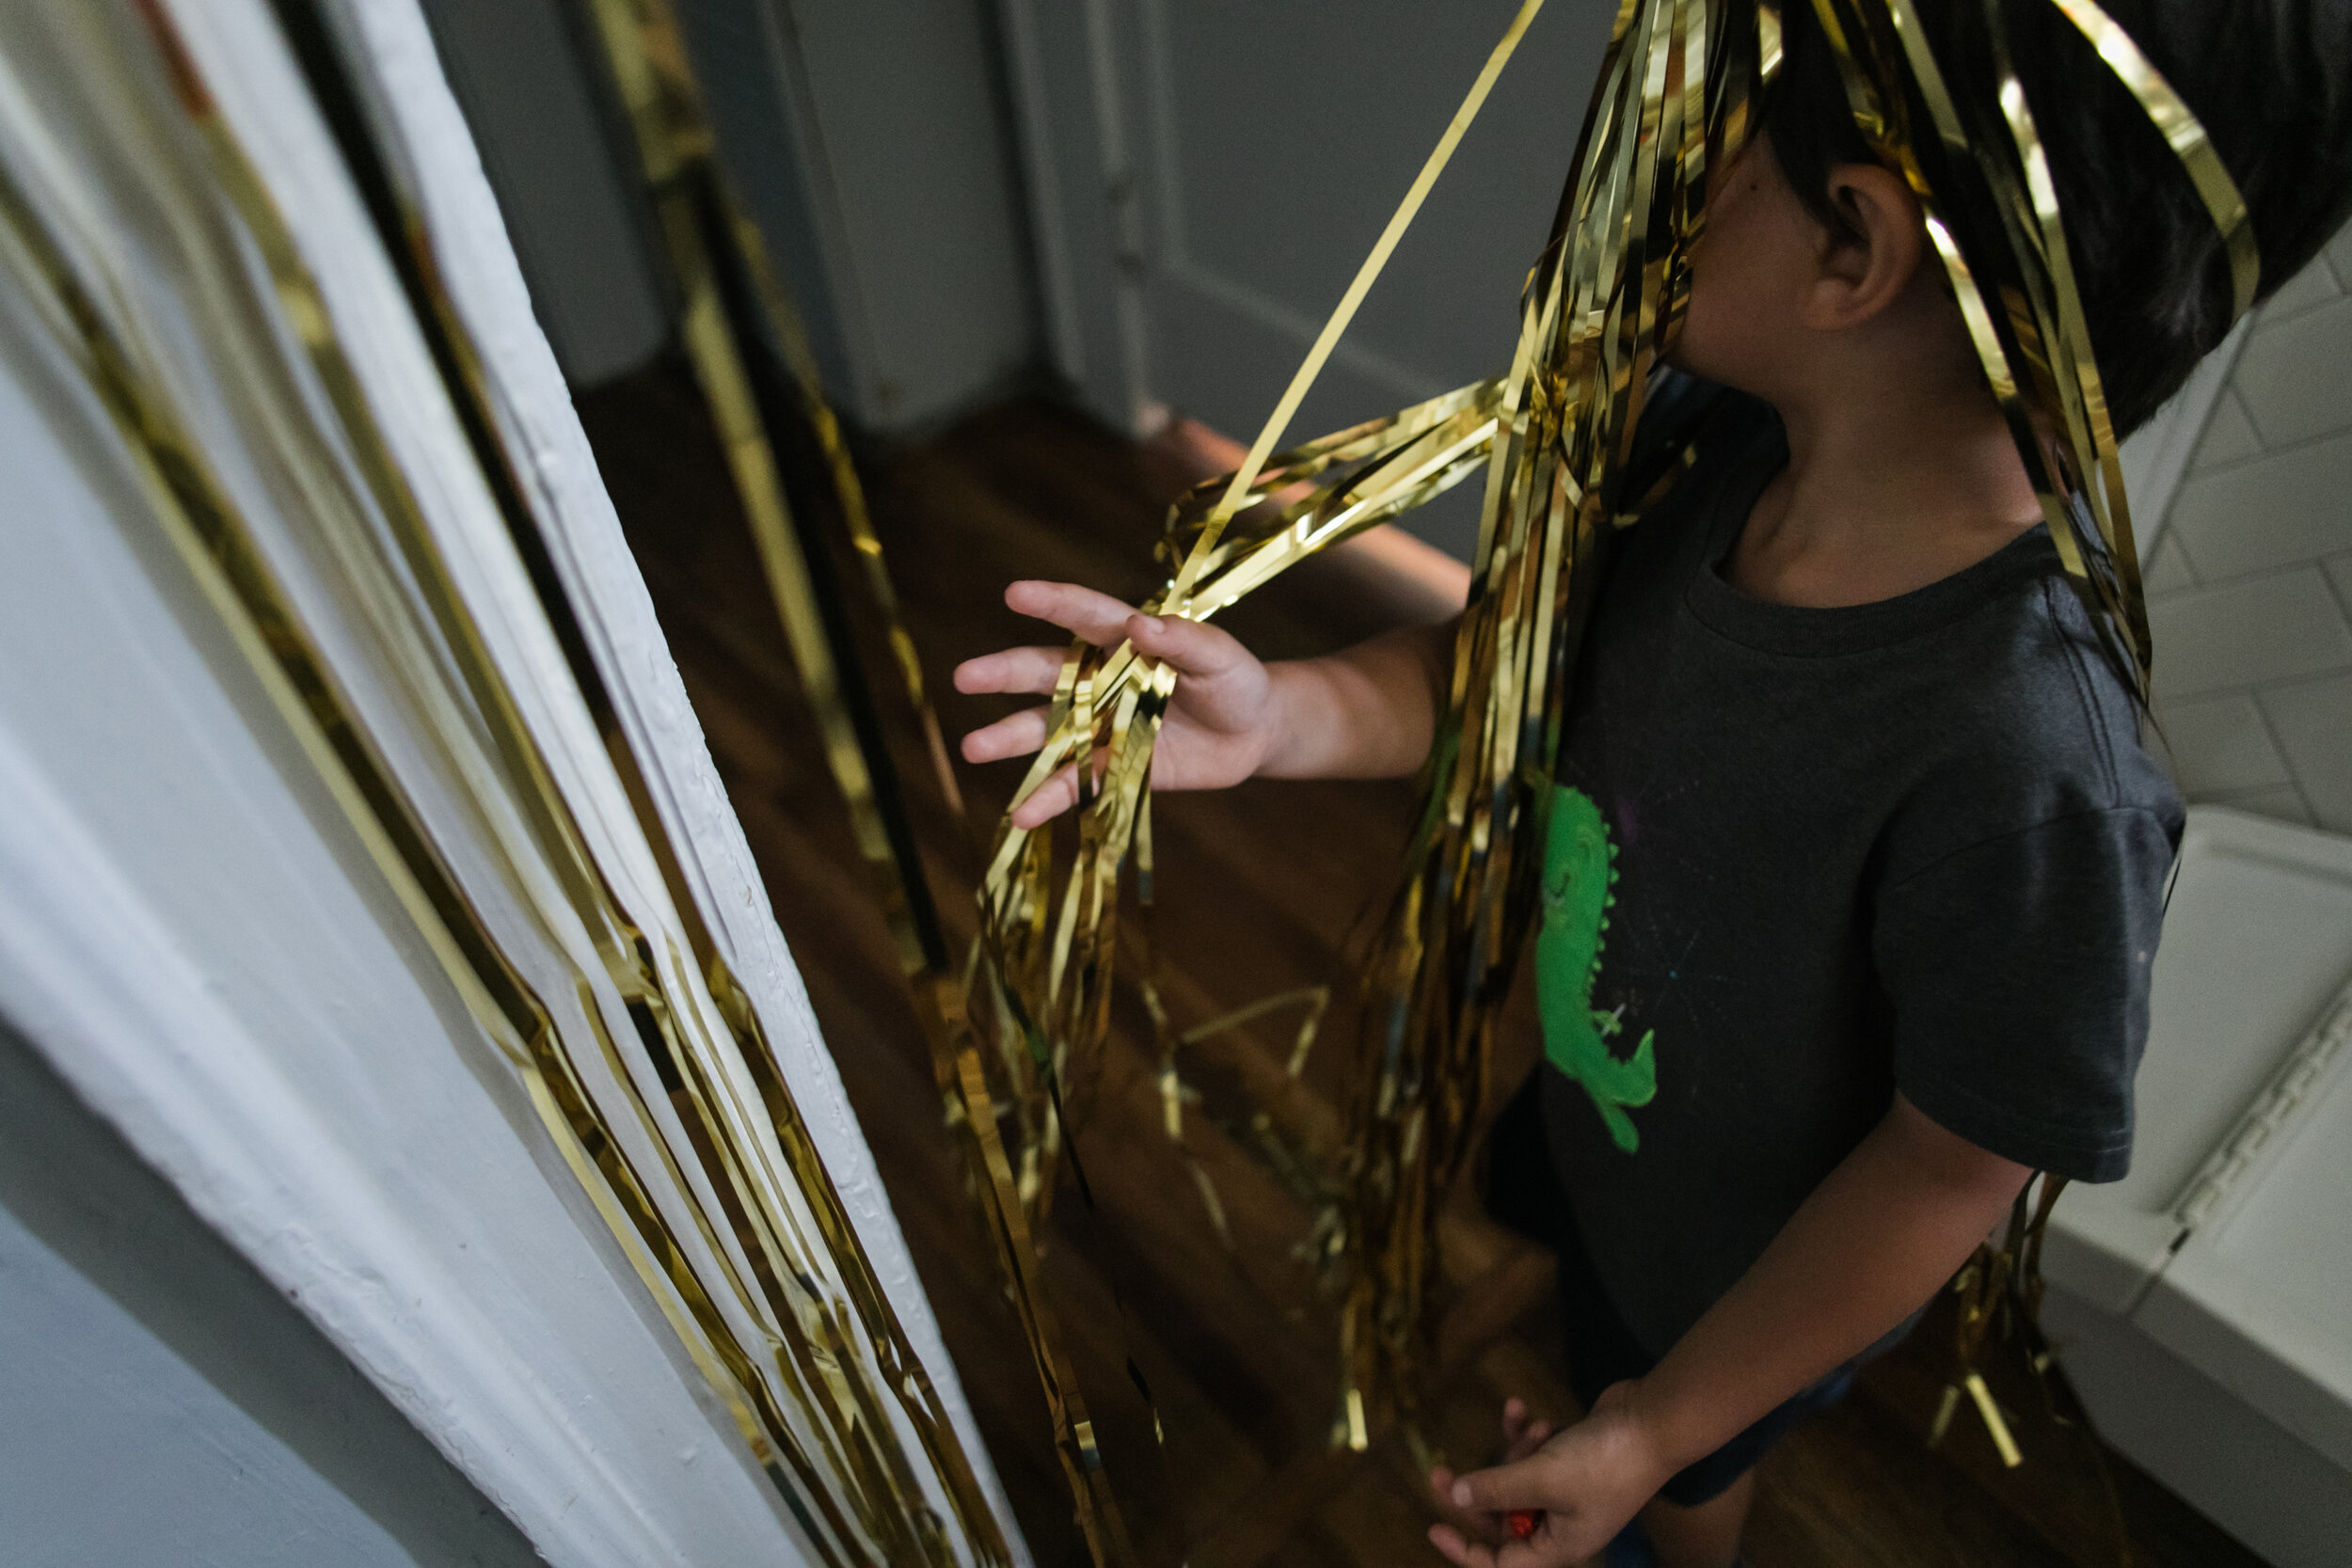 image of a boy playing with tinsel hanging in a doorway from a day in the life photography session